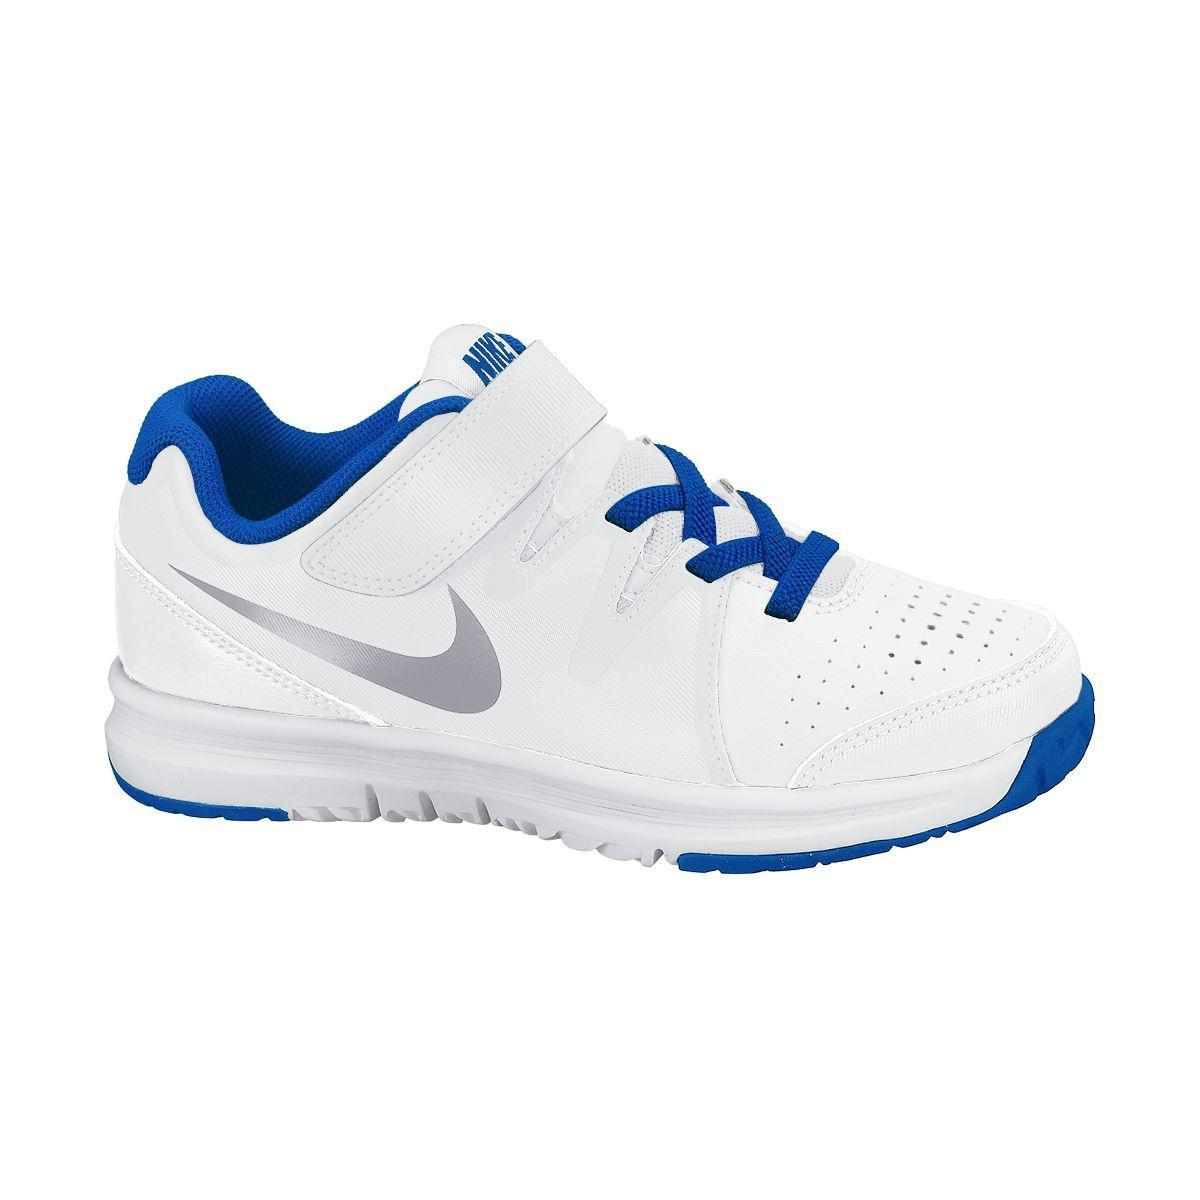 nike boys vapor court tennis shoes white lyon